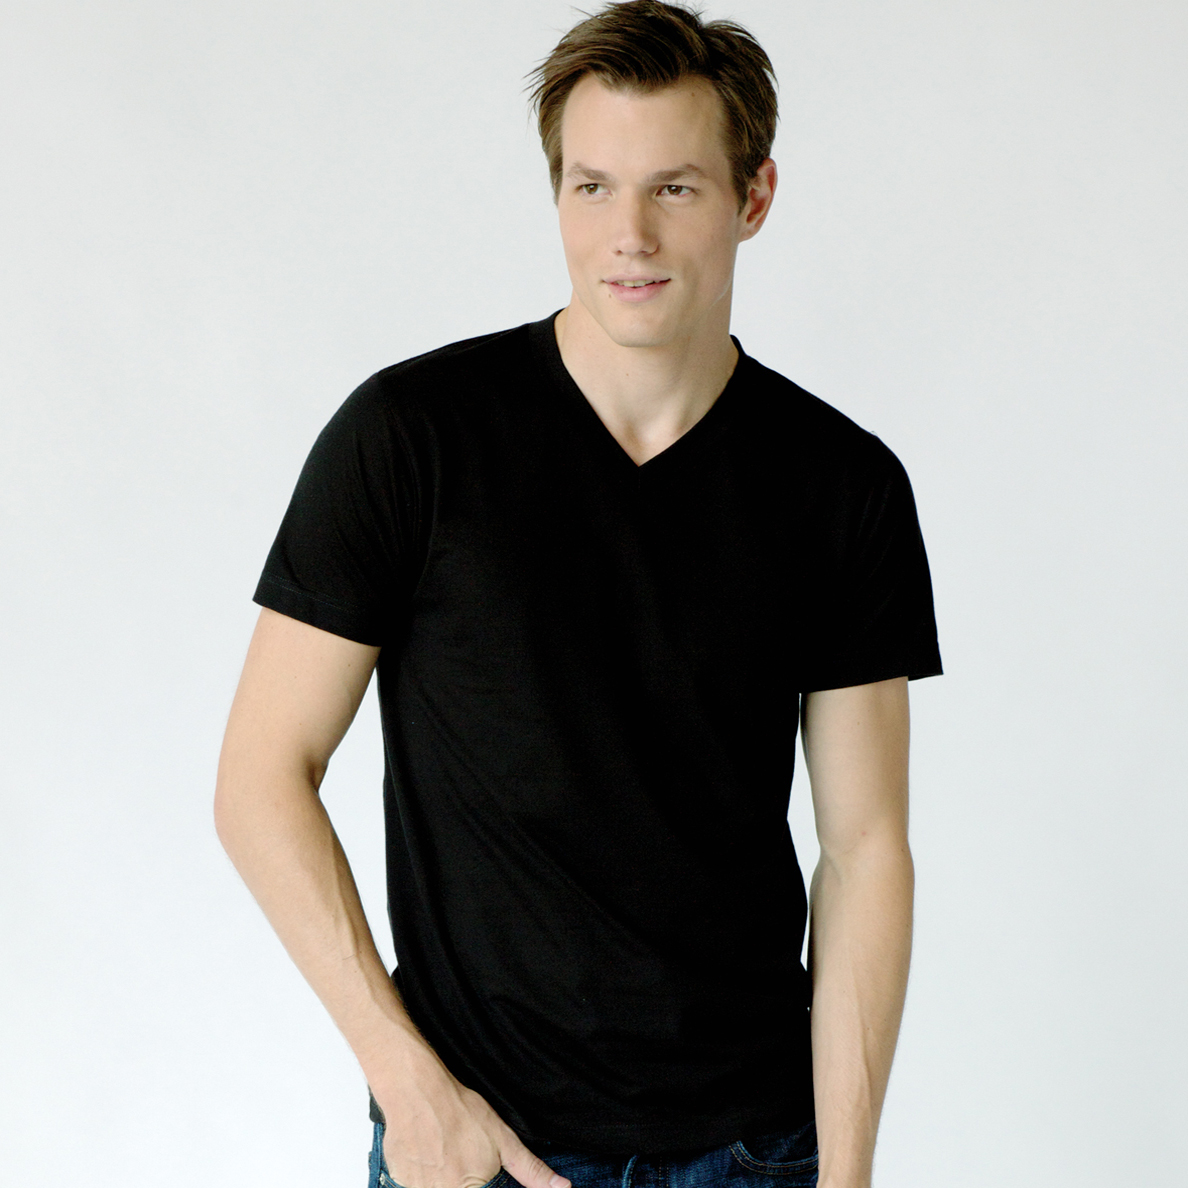 Tultex 0207 - Men's Blend V-Neck Tee